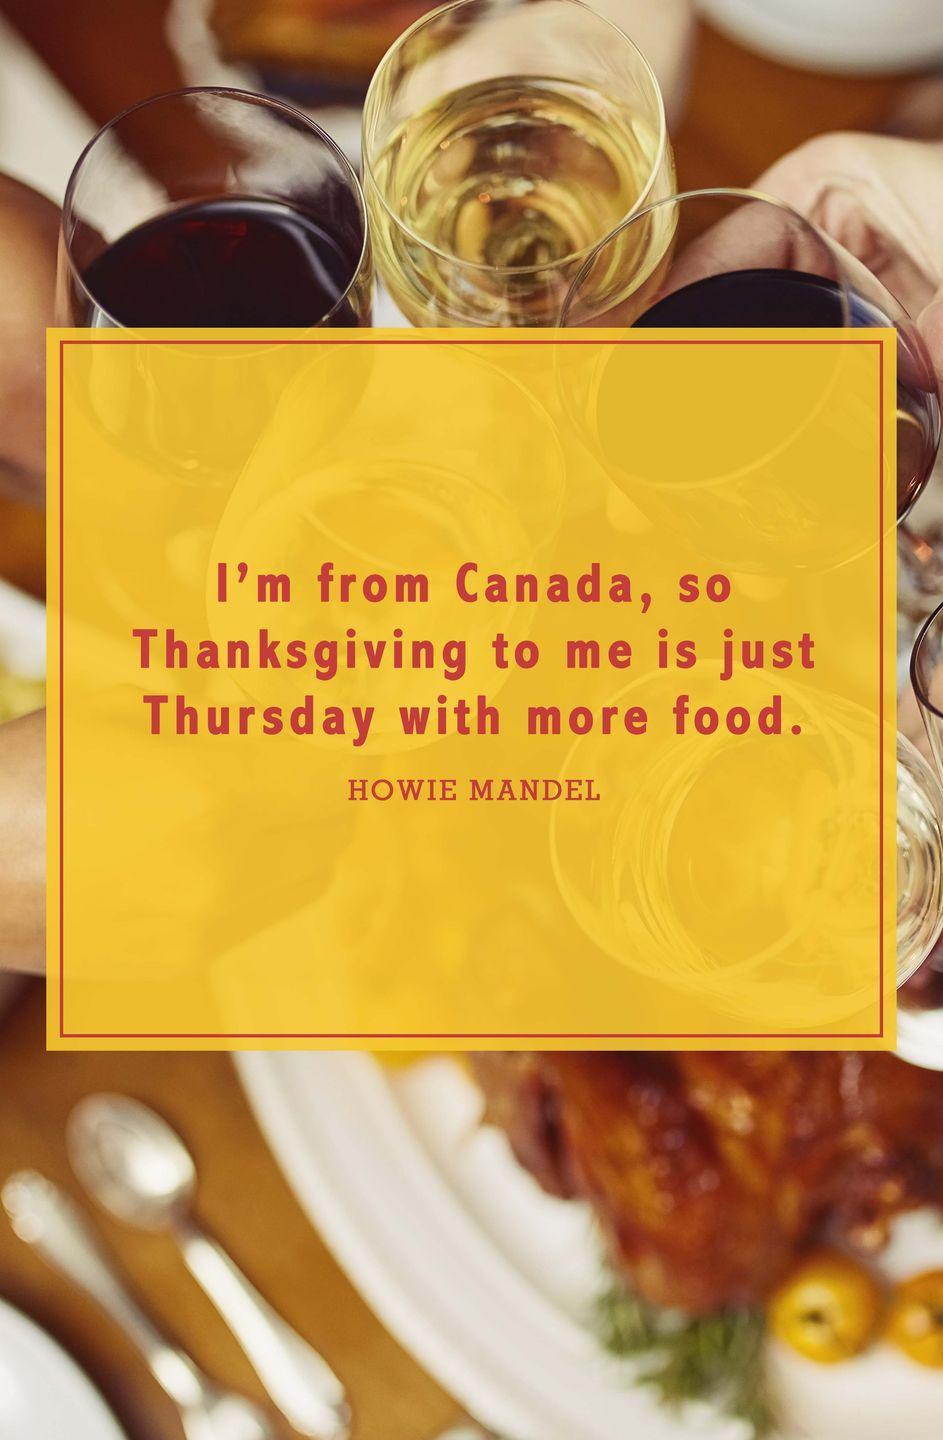 "<p>""I'm from Canada, so Thanksgiving to me is just Thursday with more food.""</p>"